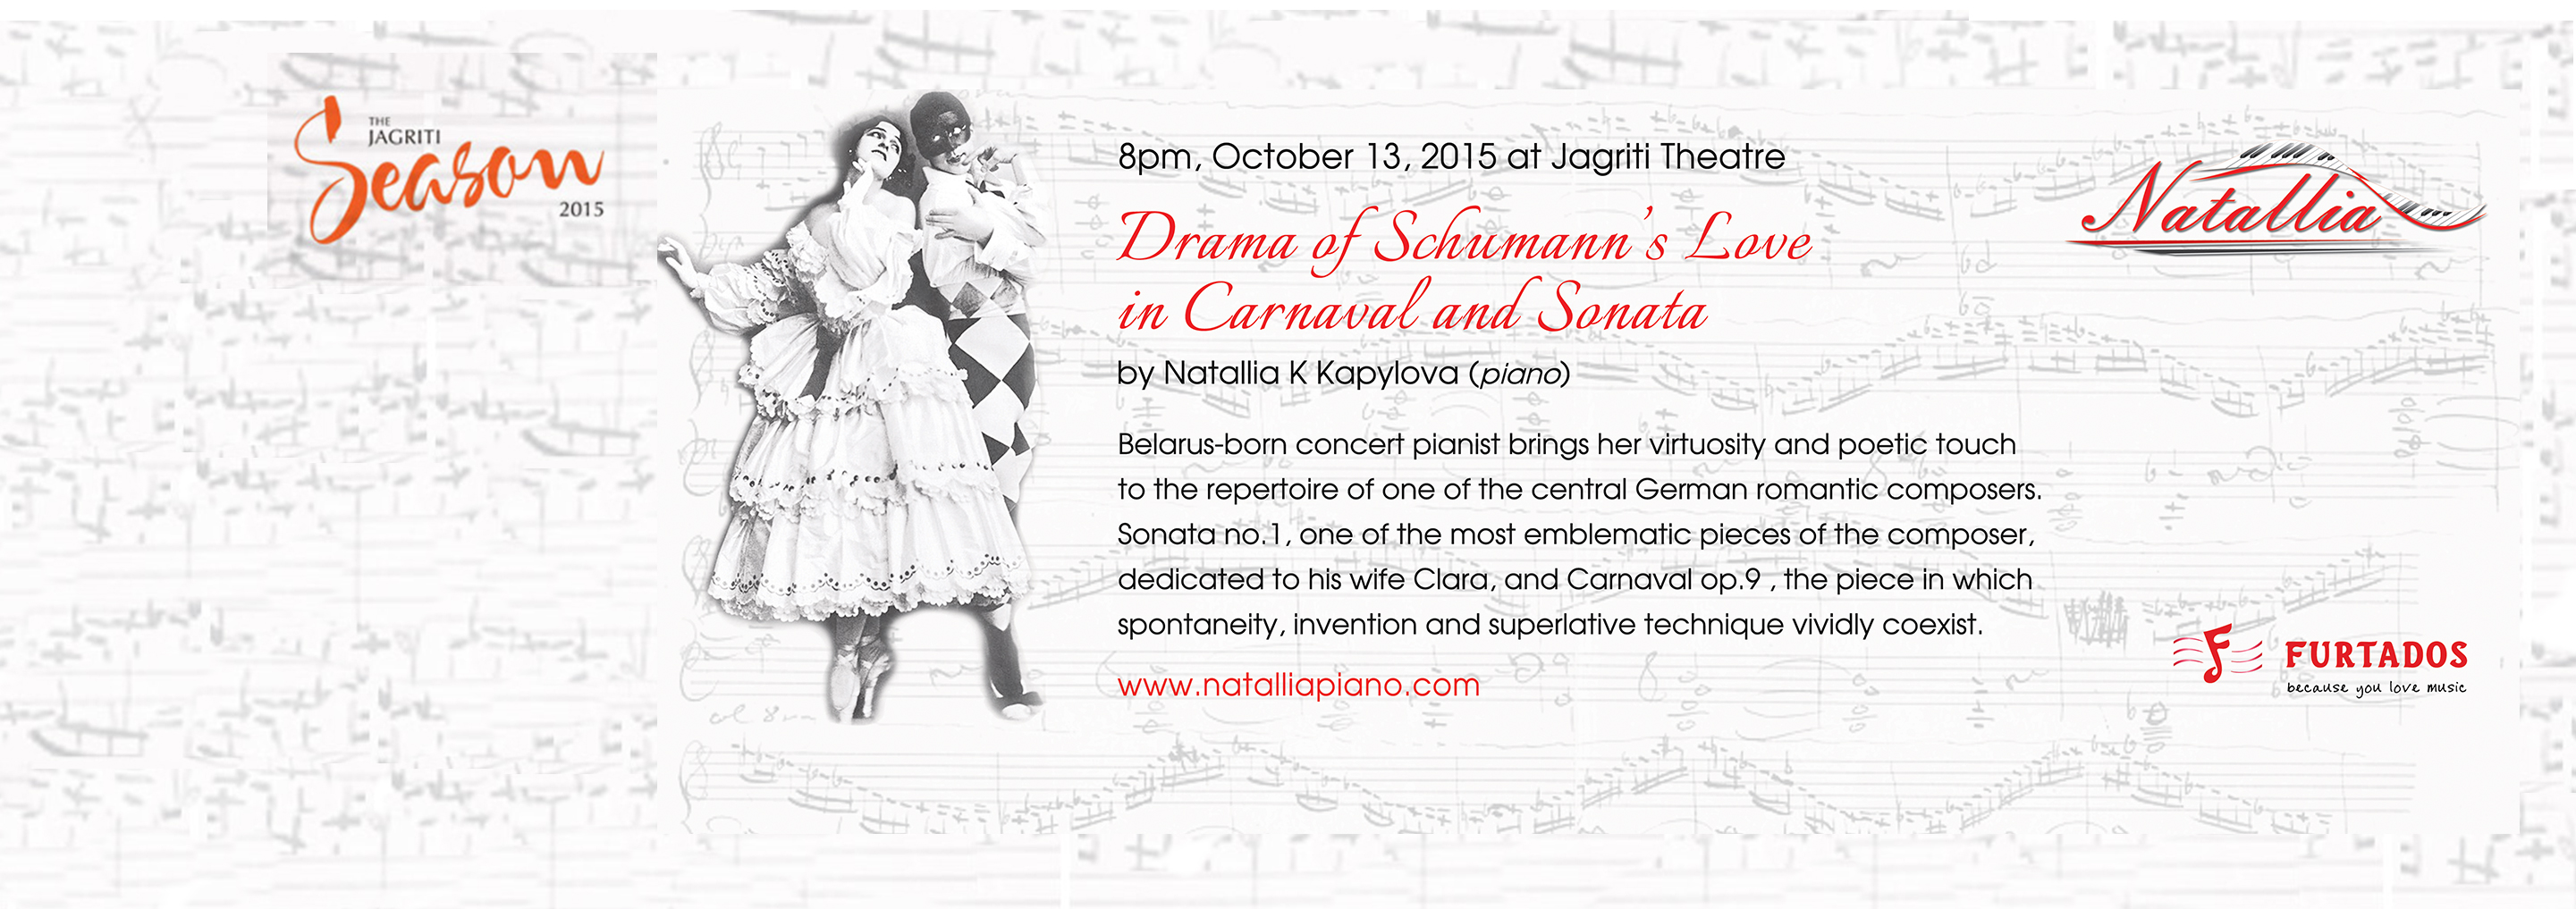 Drama of Schumann's Love in Carnaval and Sonata